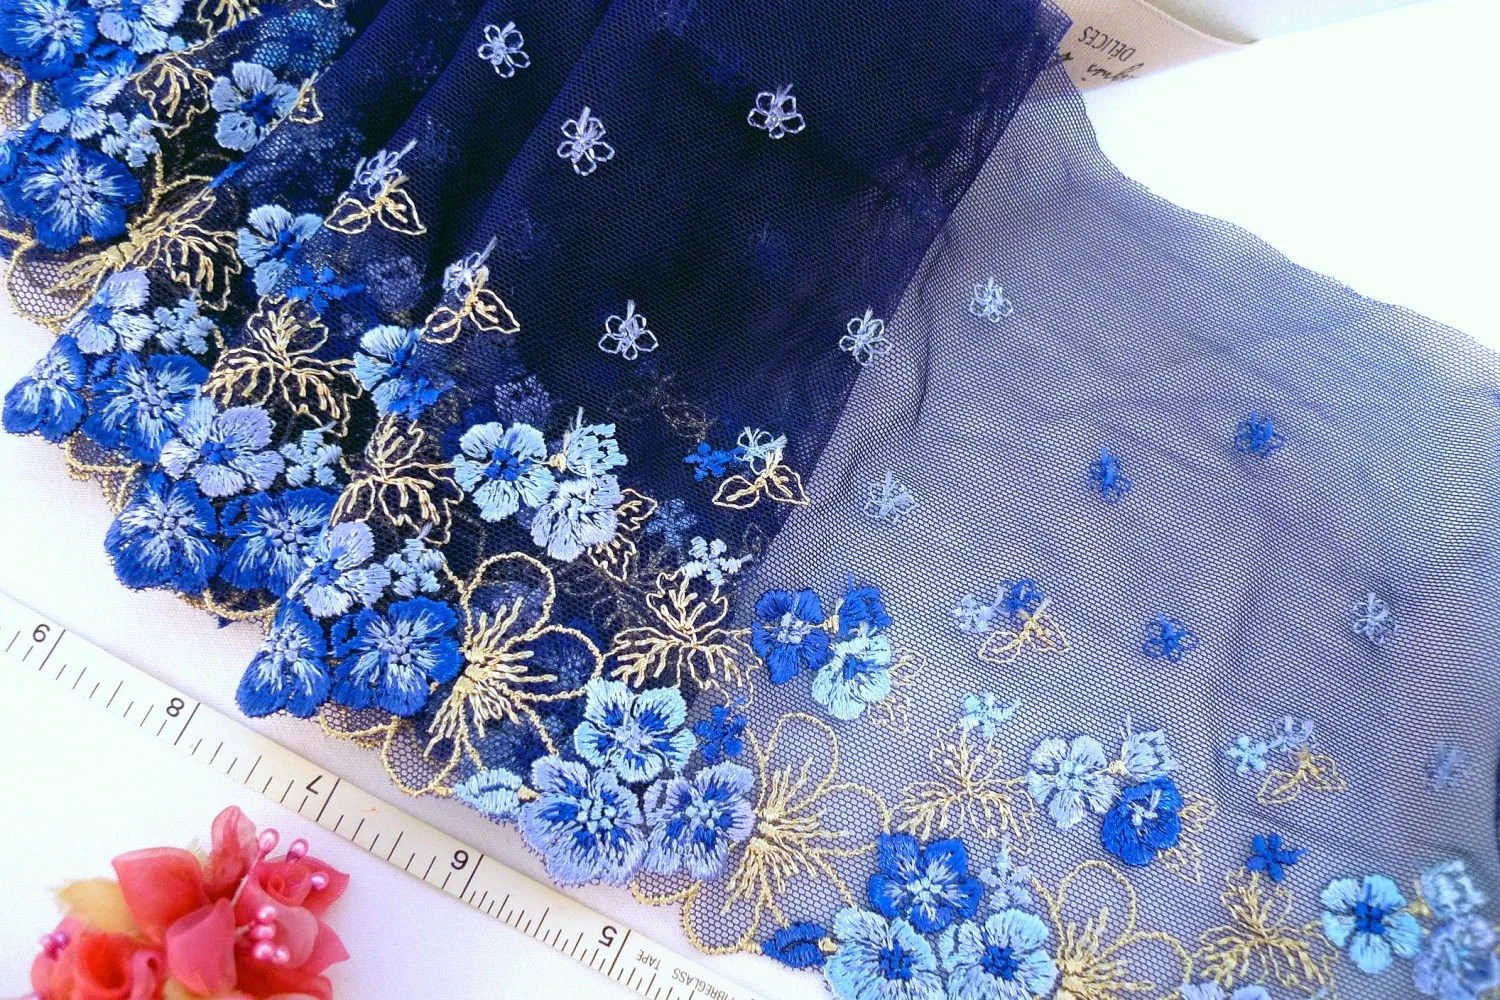 Navy blue lace embroidered floral tulle net trim 2 yards BL085